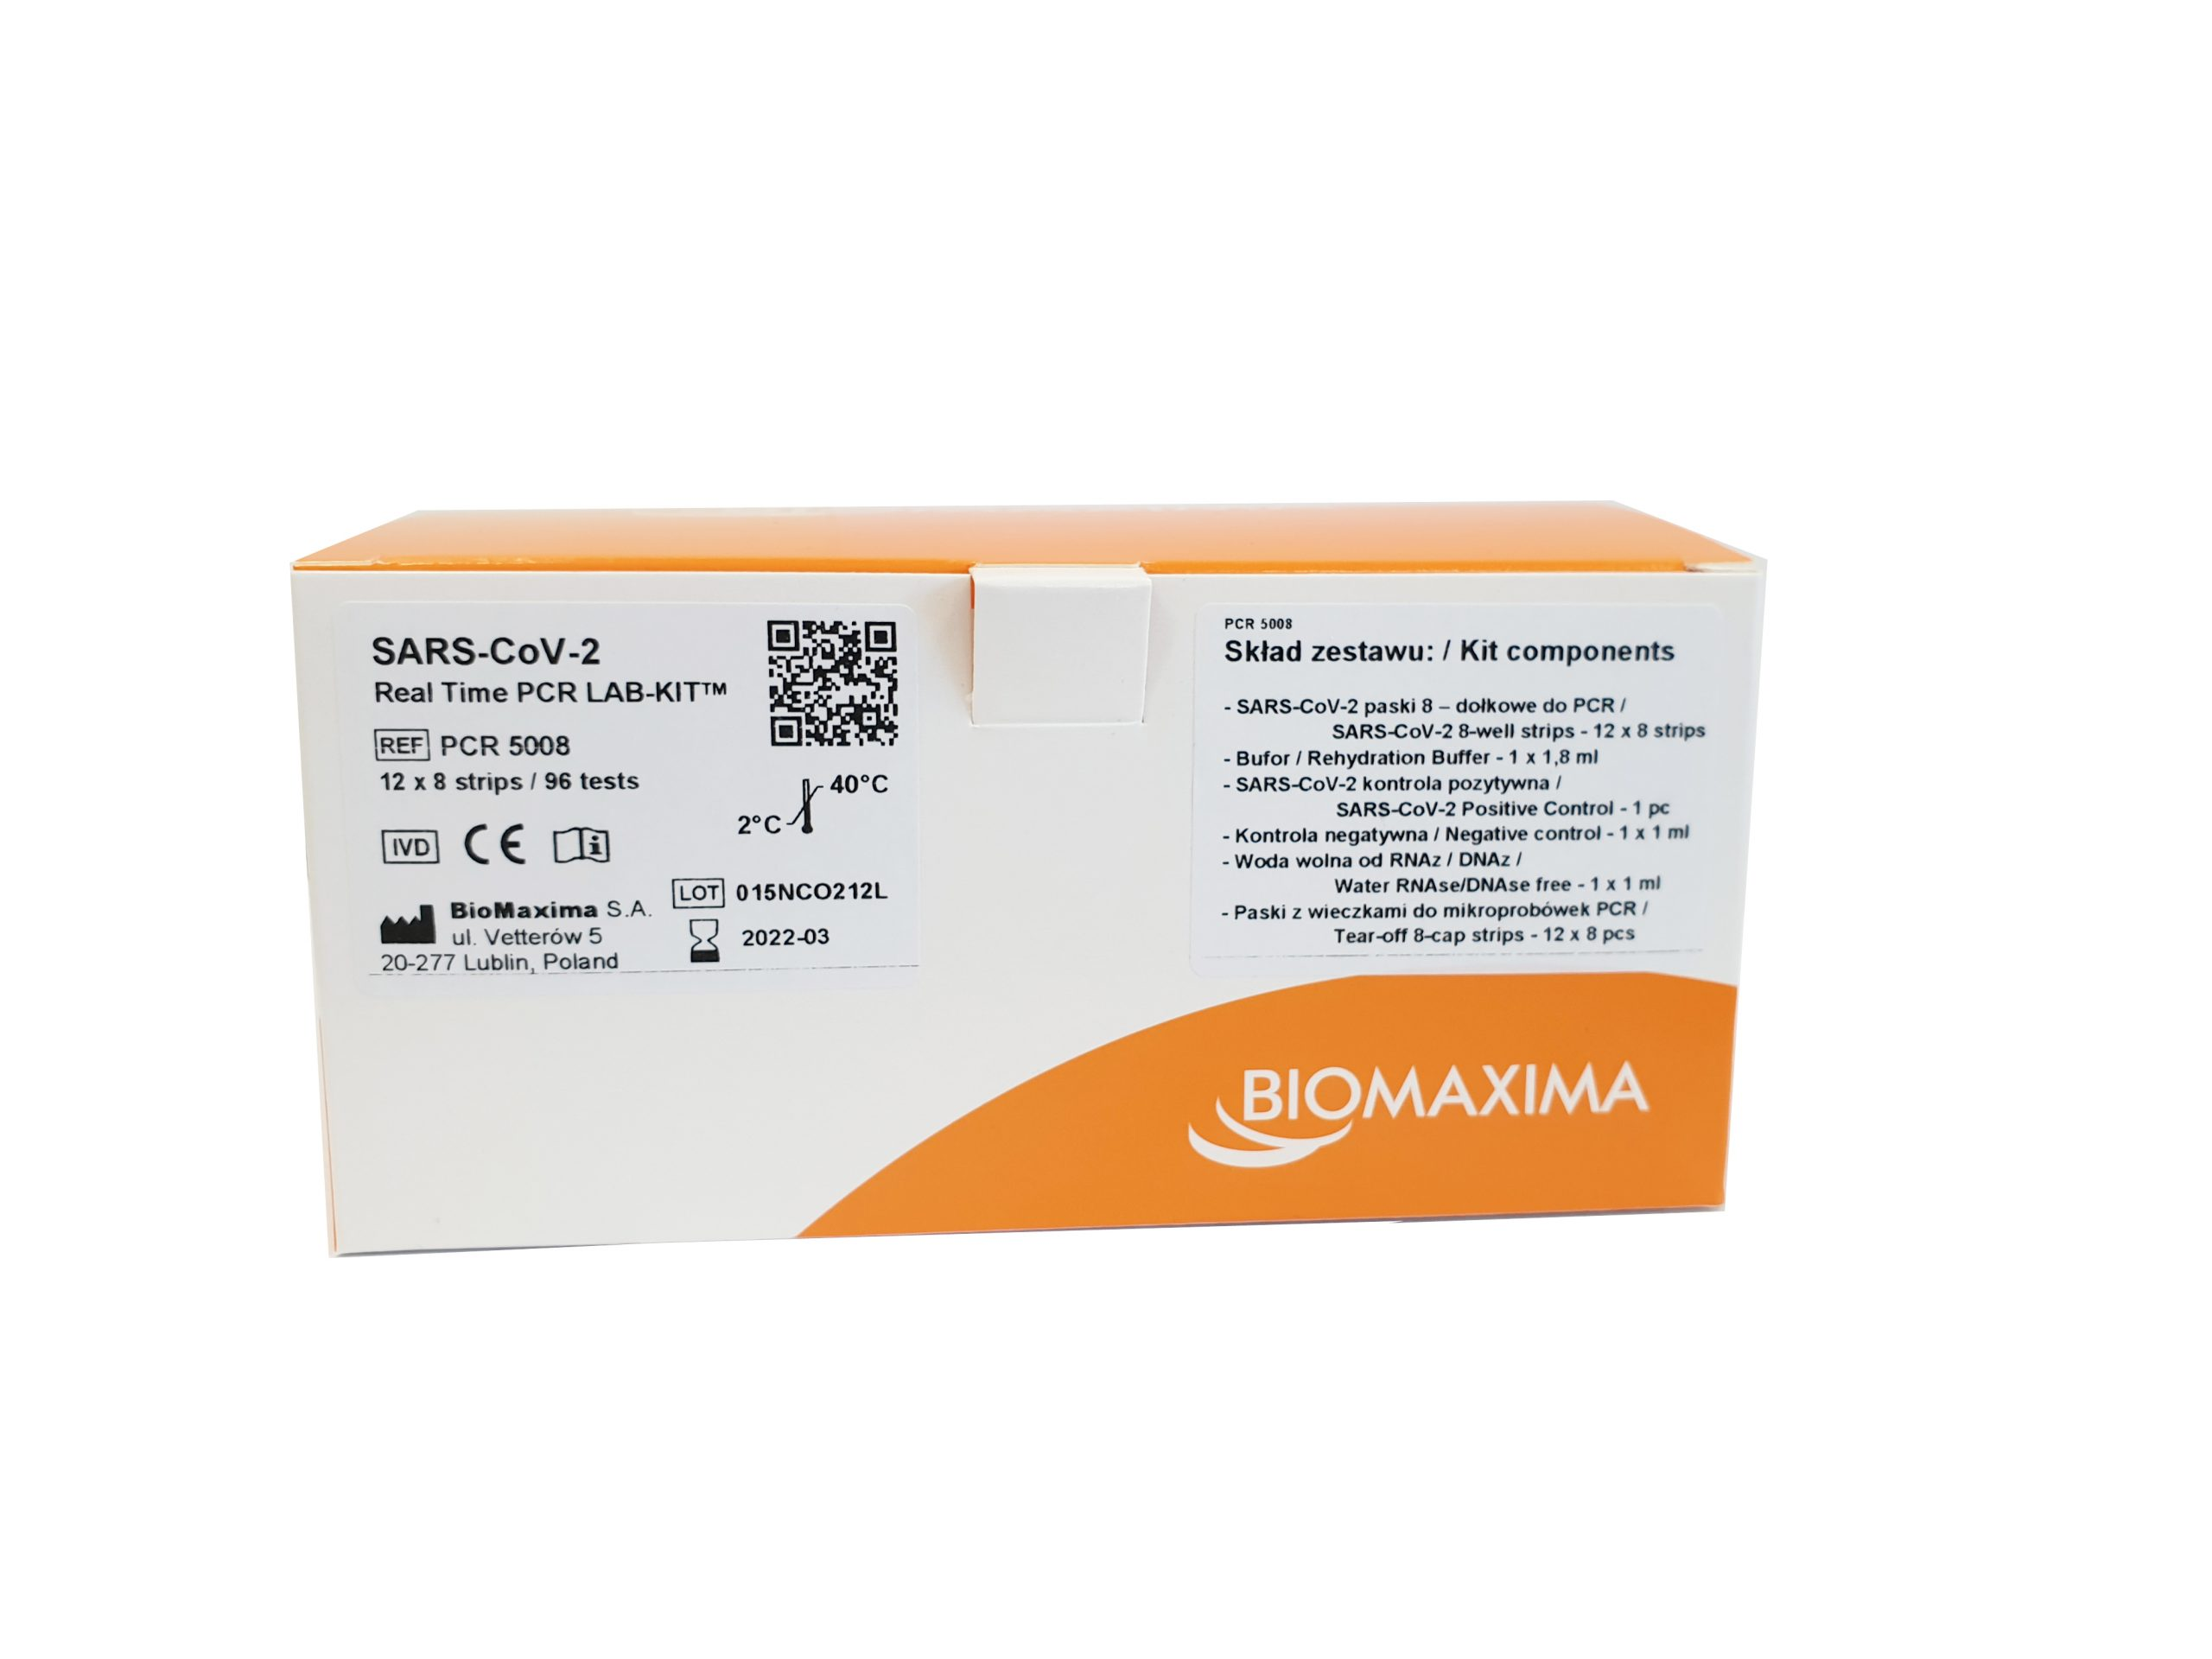 SARS-CoV-2 Real Time PCR LAB-KIT from BioMaxima at LabConsulting in Vienna / Austria